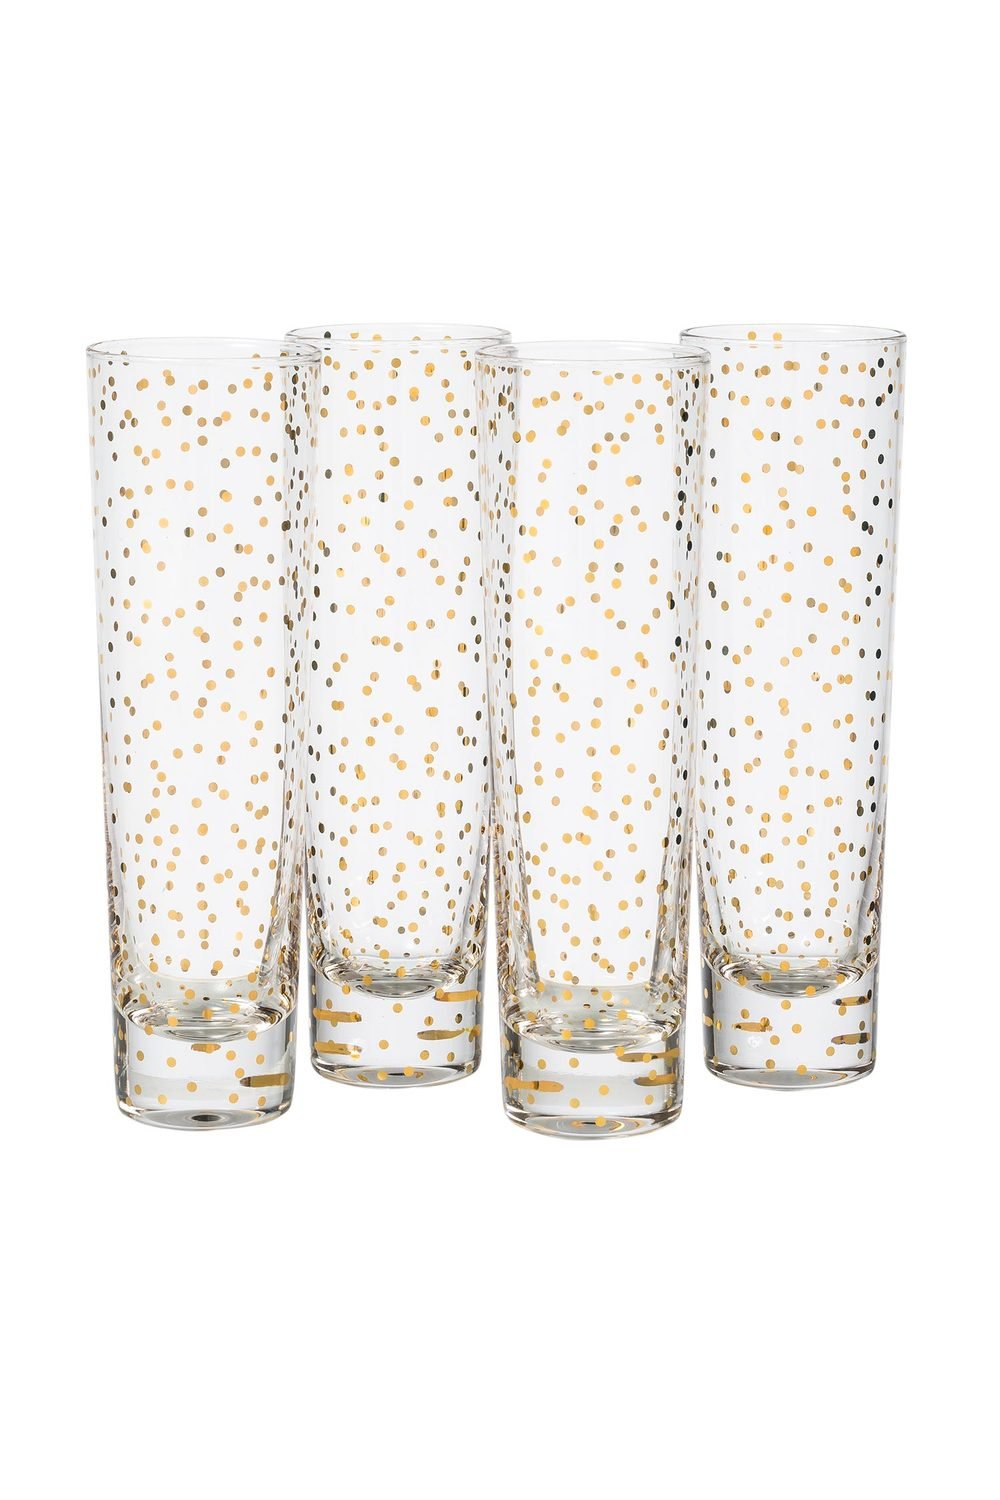 d49bc35407c Faraway Land Confetti Stemless Flutes Set of 4 Online   Shop EziBuy Home